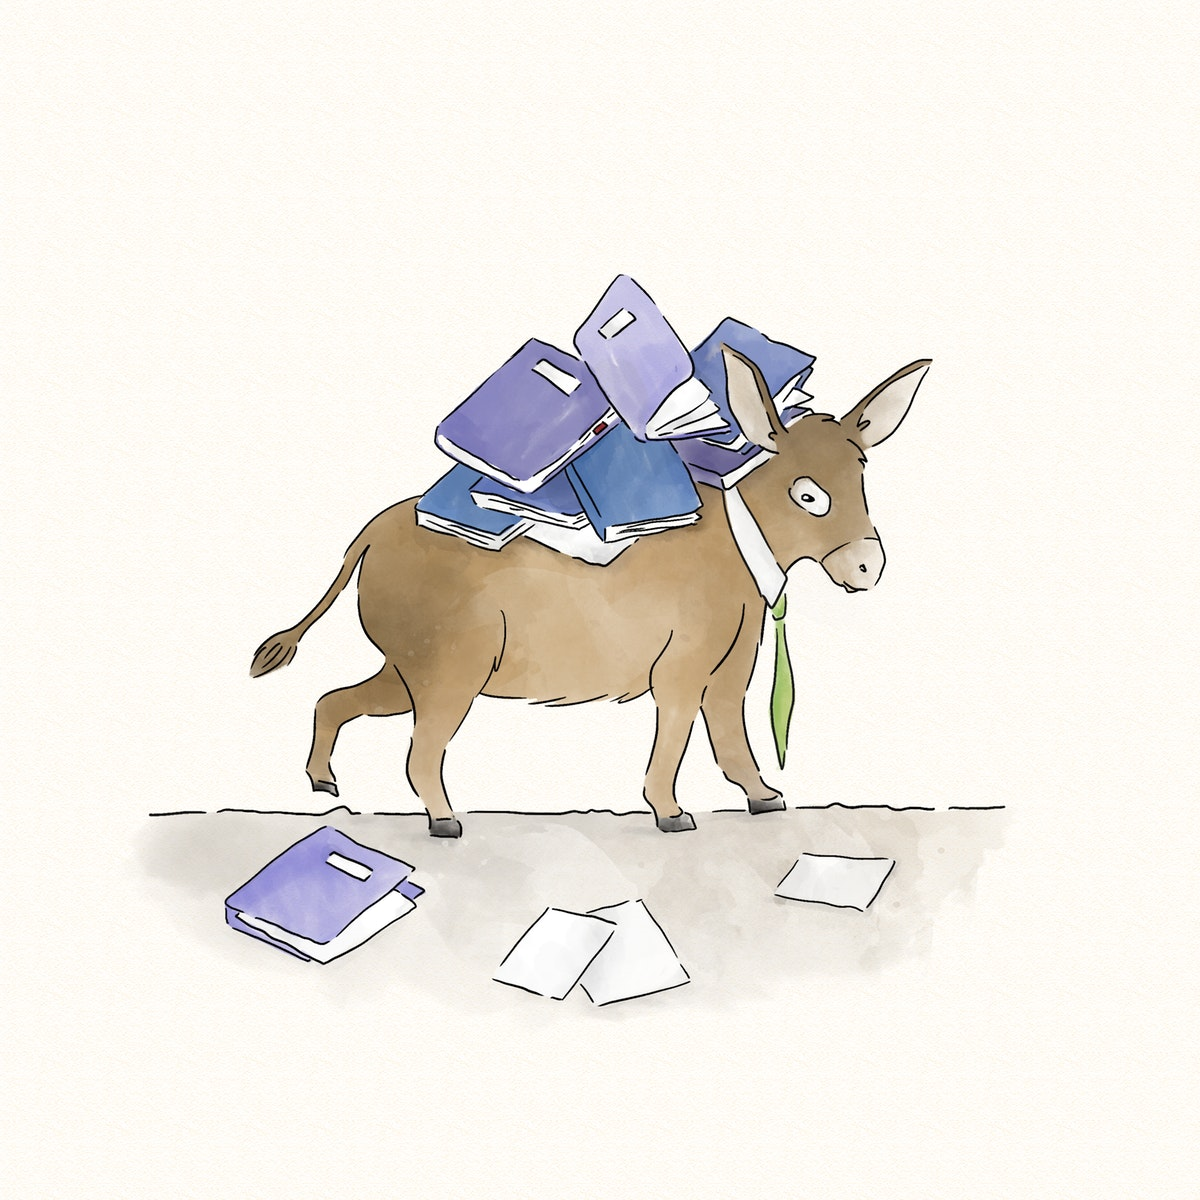 donkey carrying a load of books